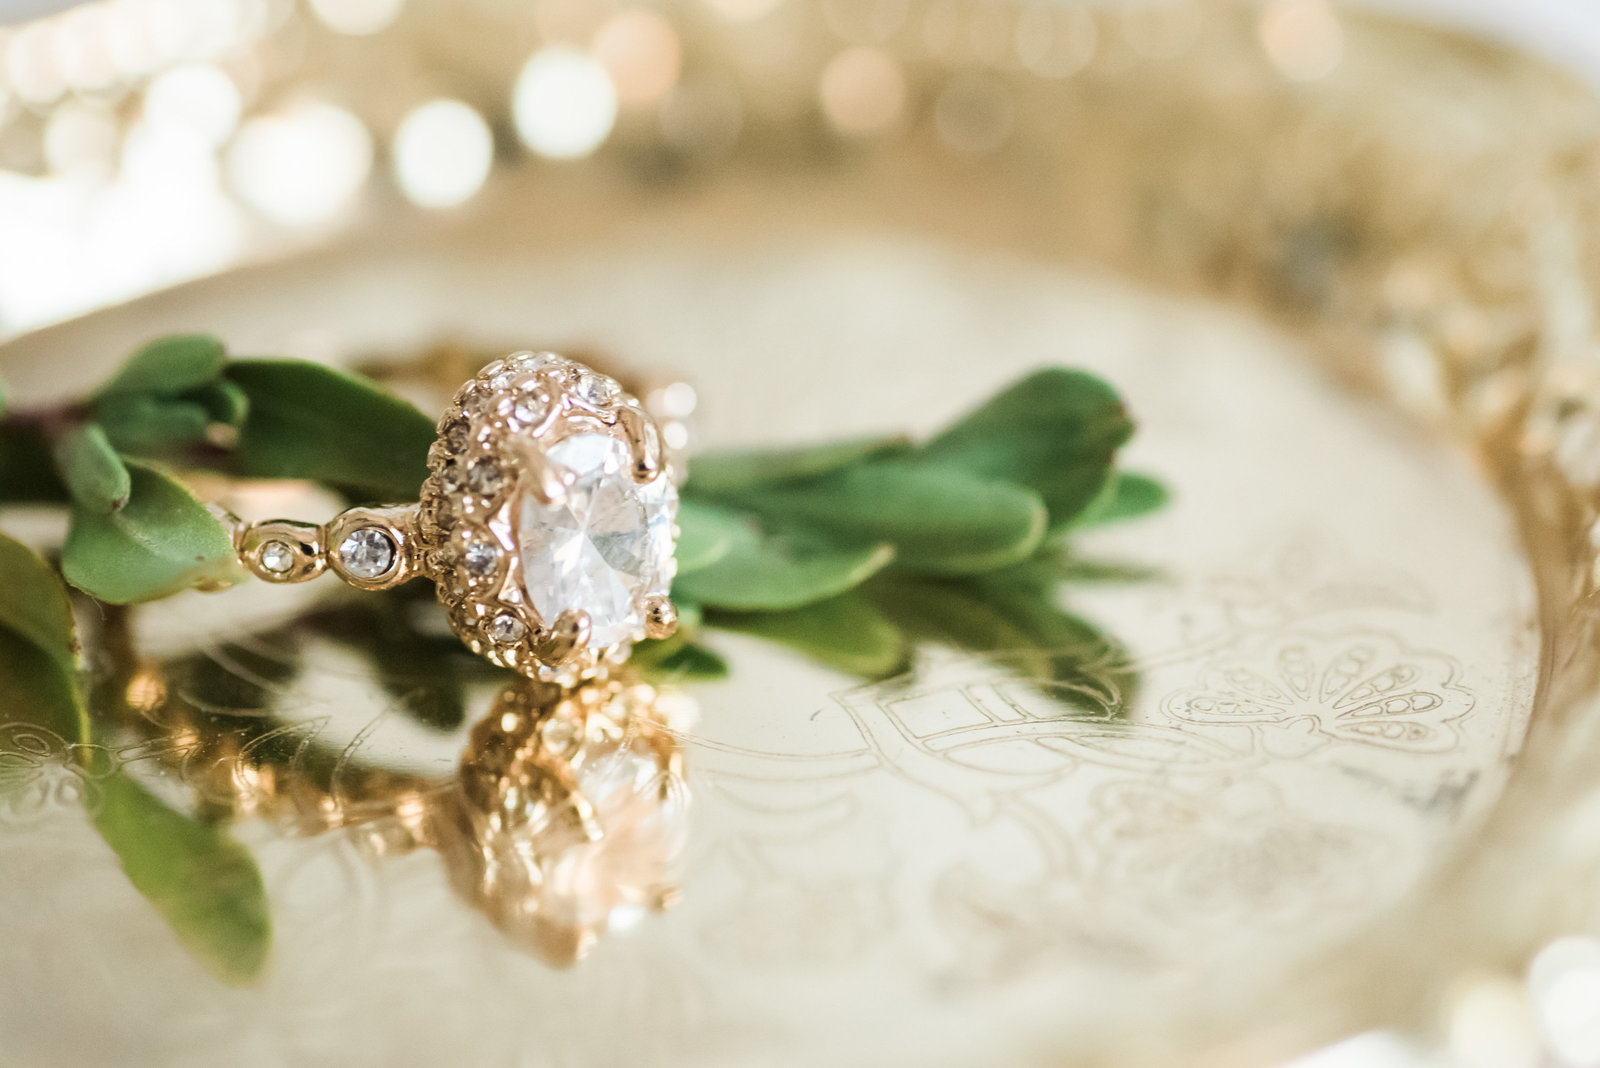 Vintage Gold Wedding Ring Detail Photo